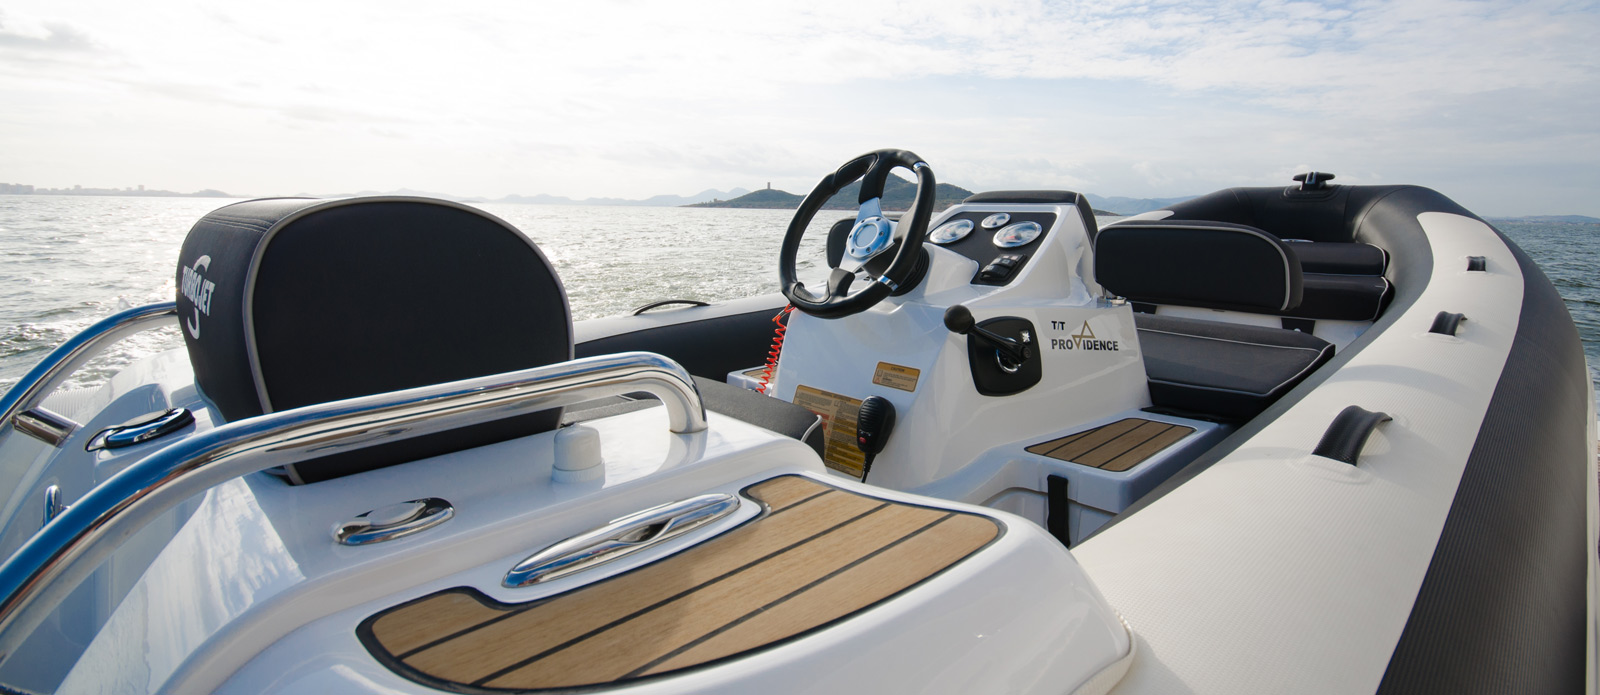 Sunseeker 86 Yacht - Williams-Jet-Tender